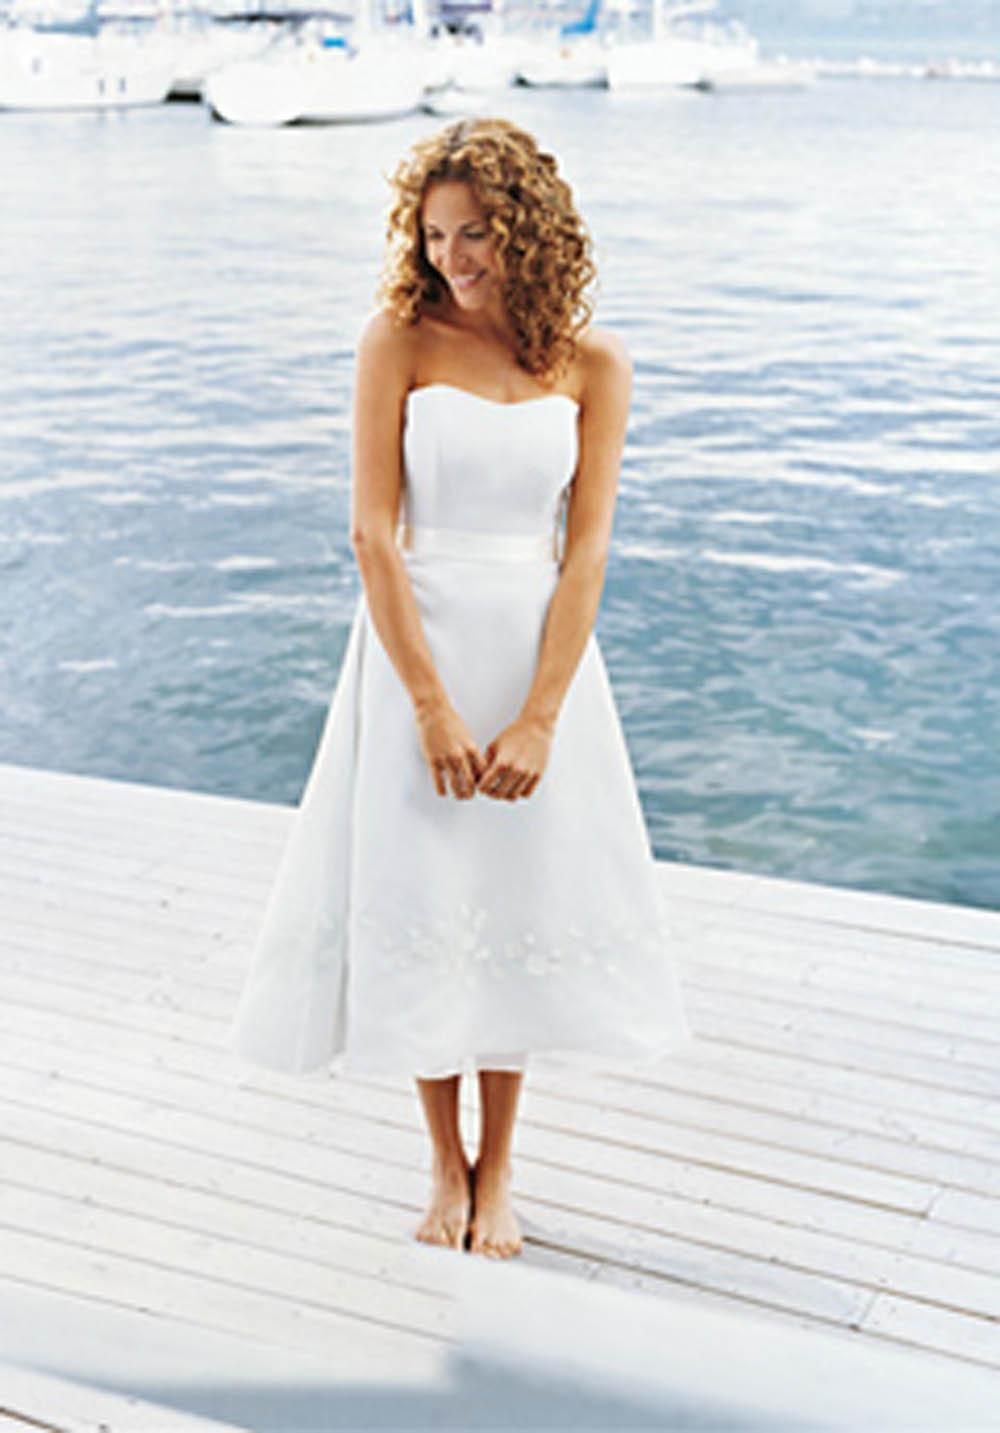 Casual Wedding Dresses | Hilary\'s blog: casual-beach-wedding-gowns-4 ...